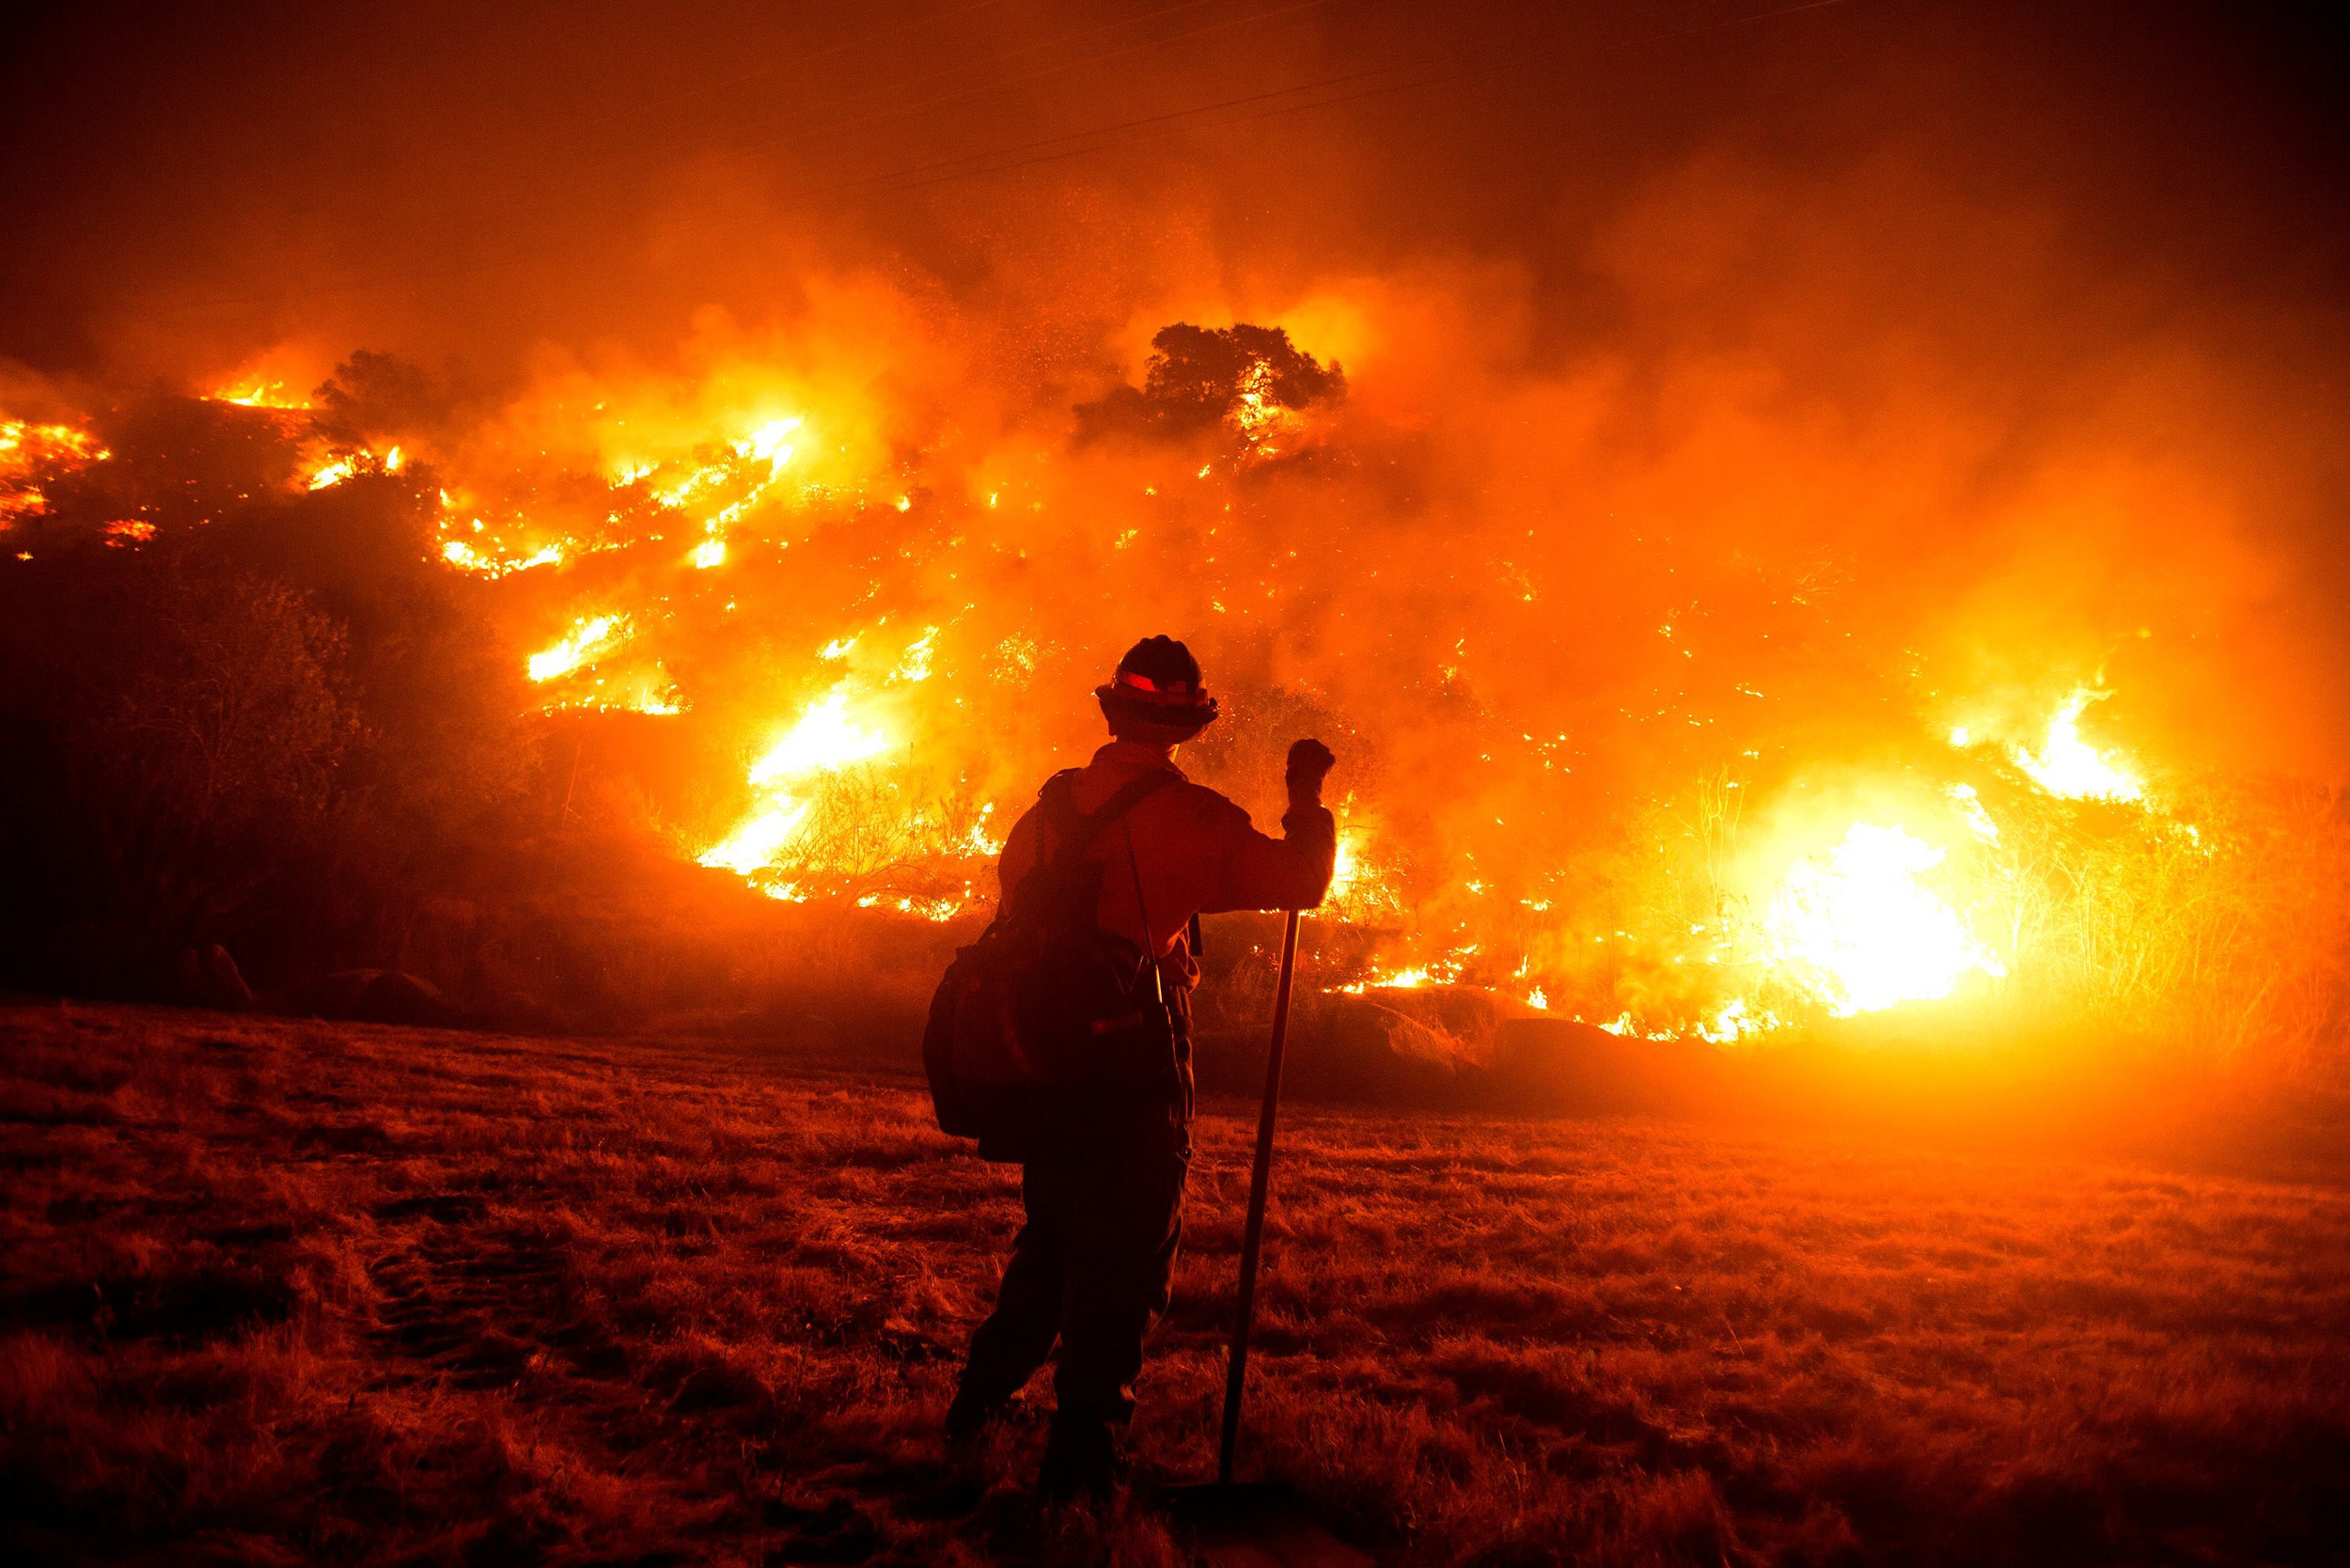 A perfect storm': Why a California wildfire continues to elude firefighters